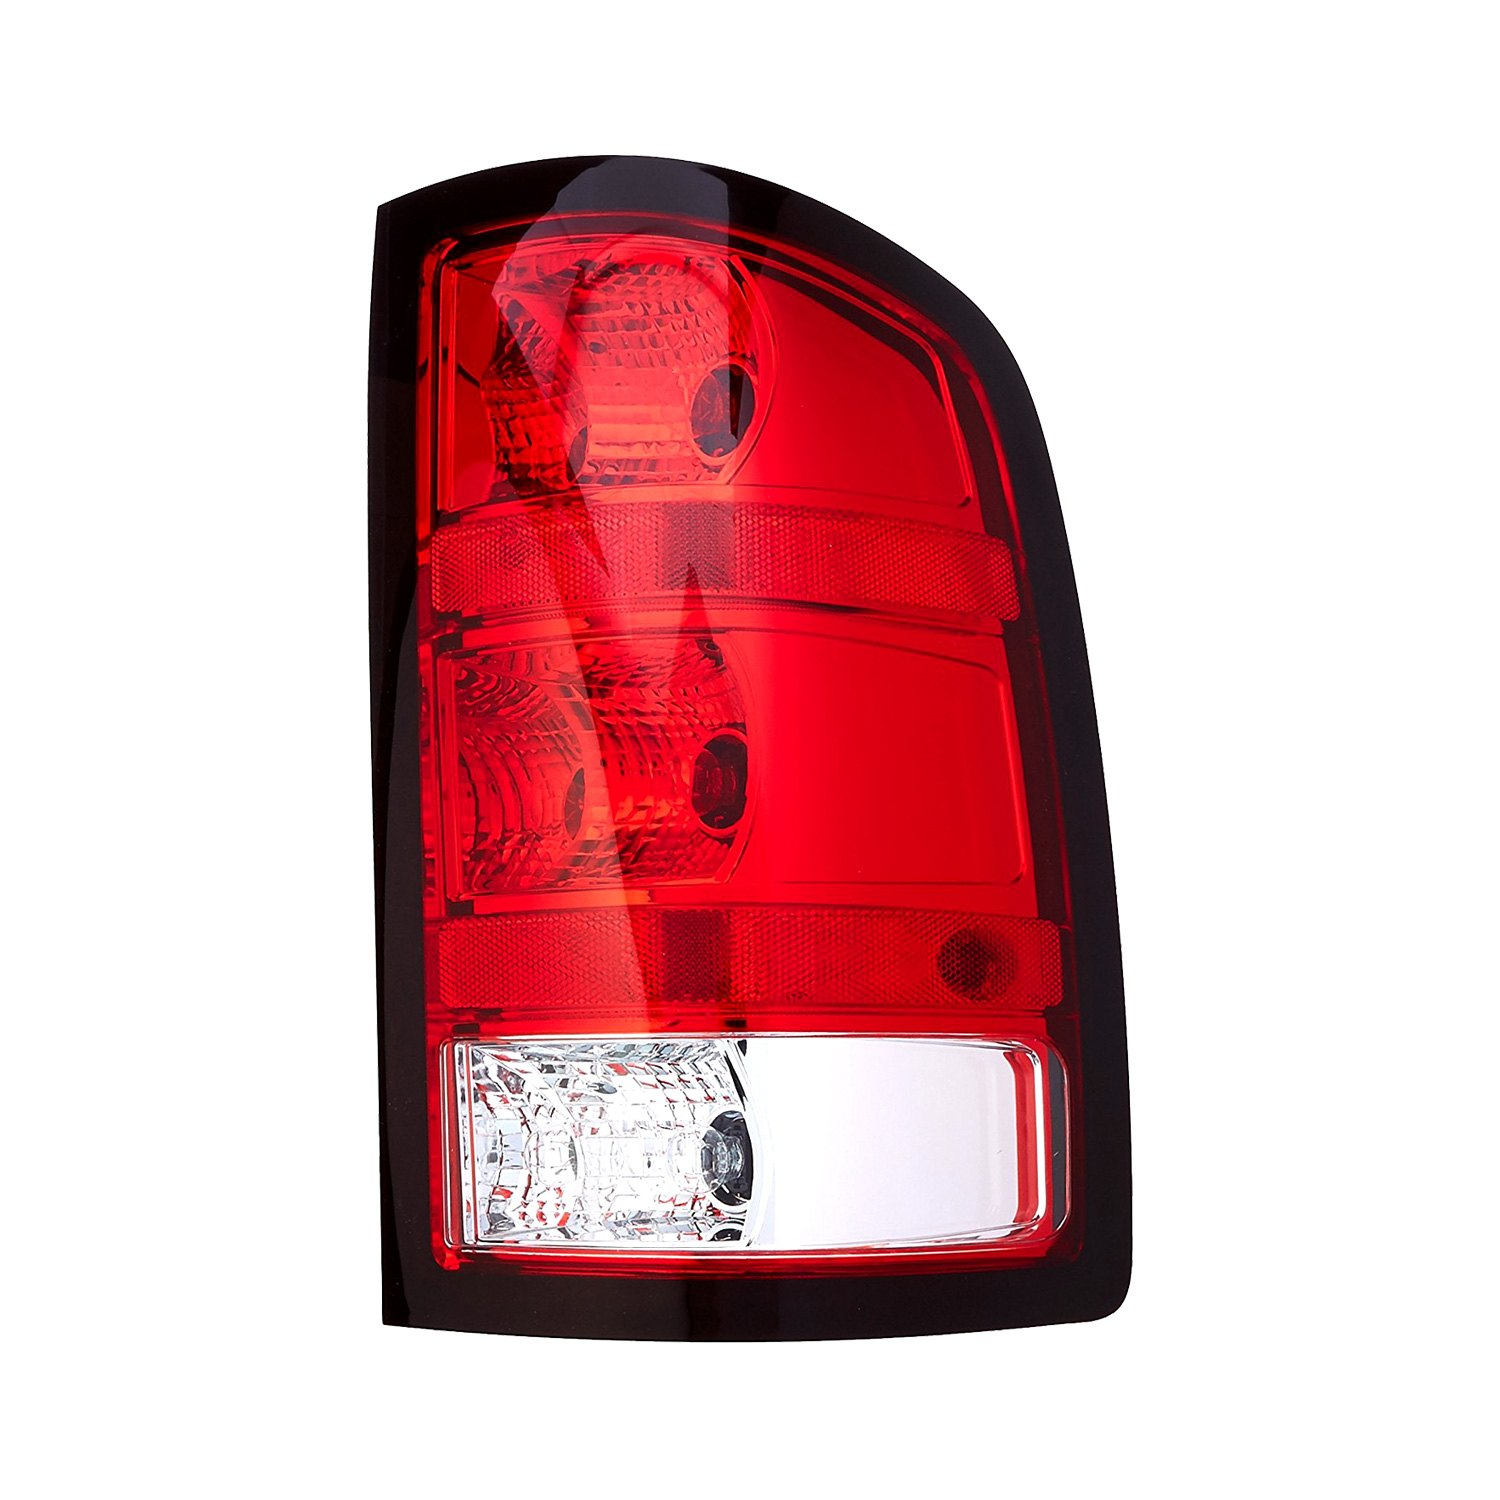 tyc chevy silverado 2011 replacement tail light. Black Bedroom Furniture Sets. Home Design Ideas